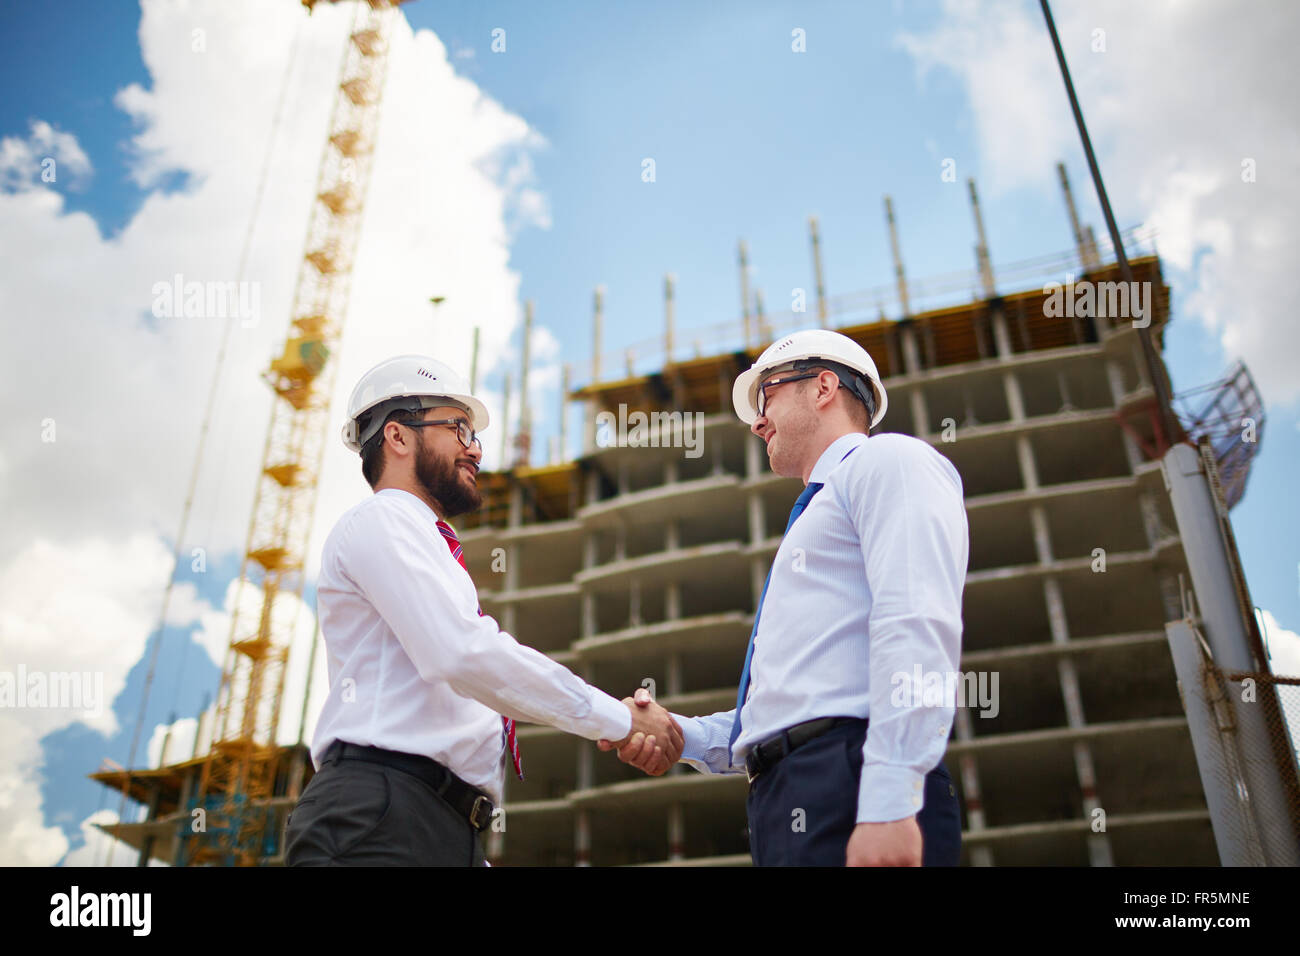 Two young architects in hardhats greeting each other with handshake - Stock Image